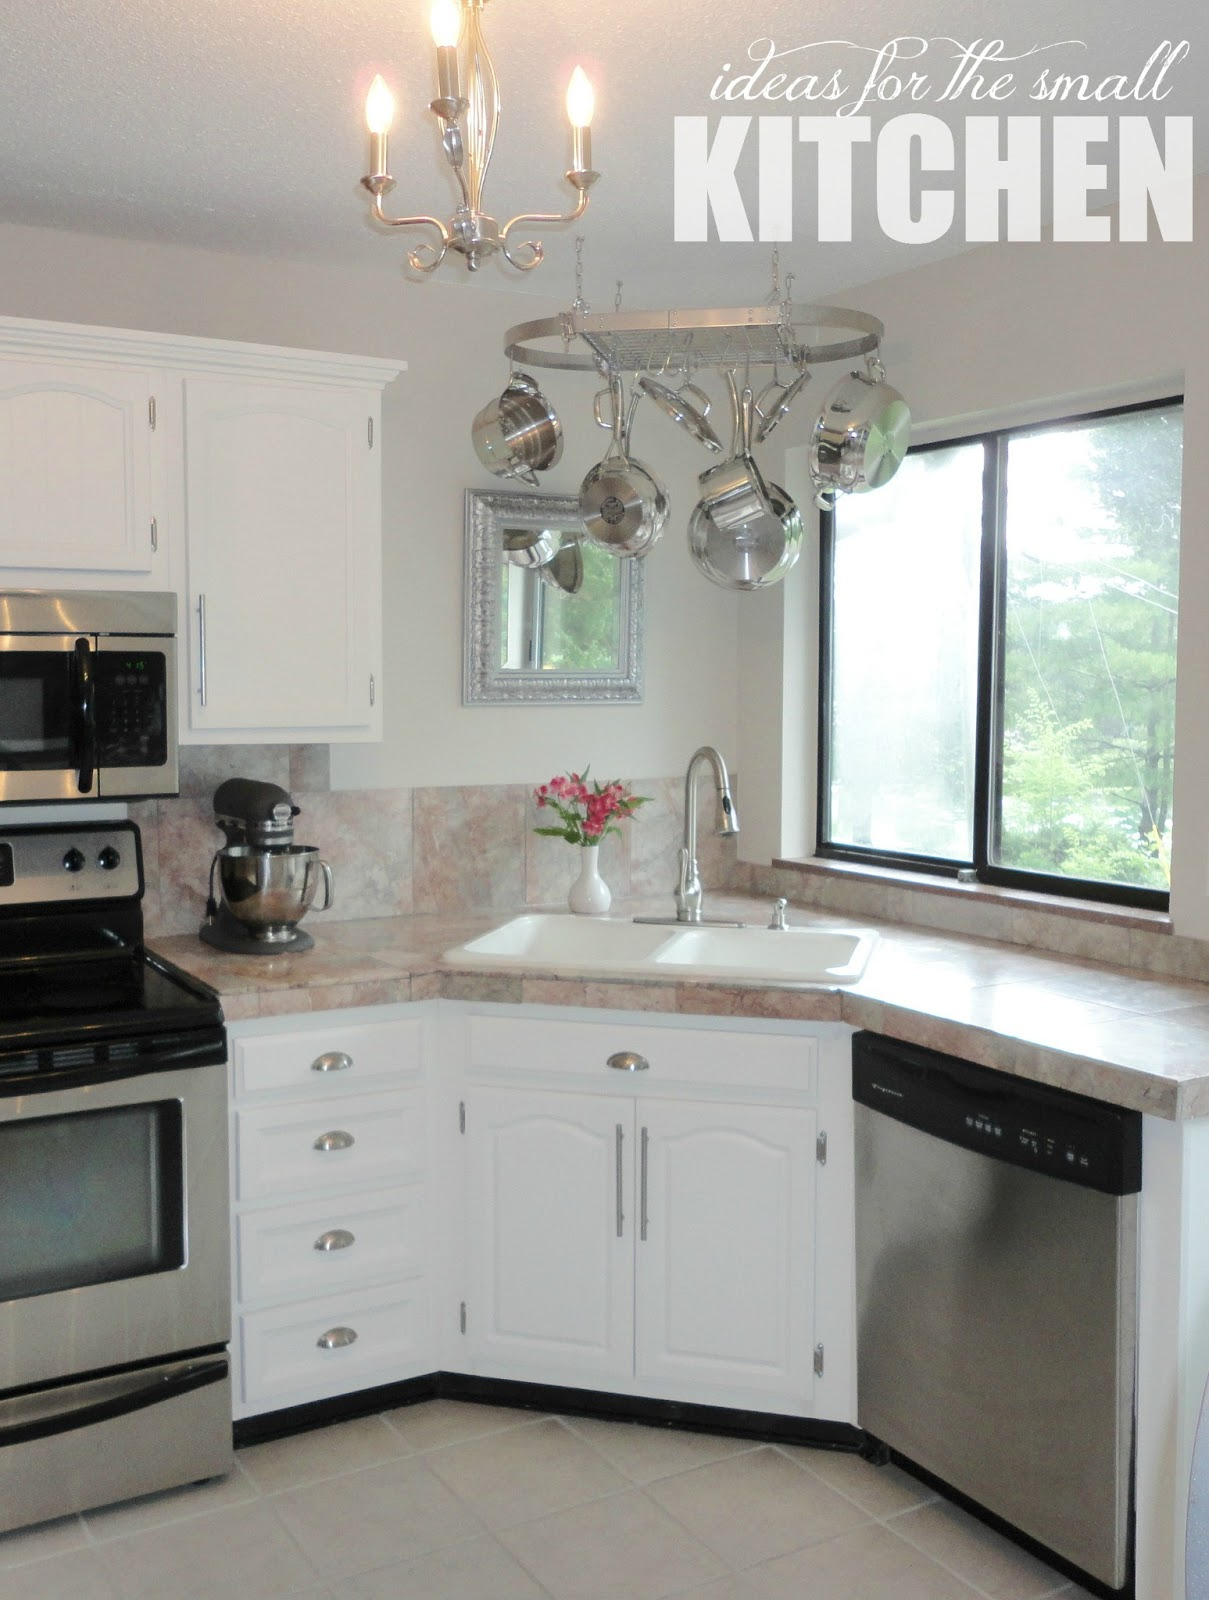 Livelovediy the kitchen to do list progress report Kitchen design with corner sink